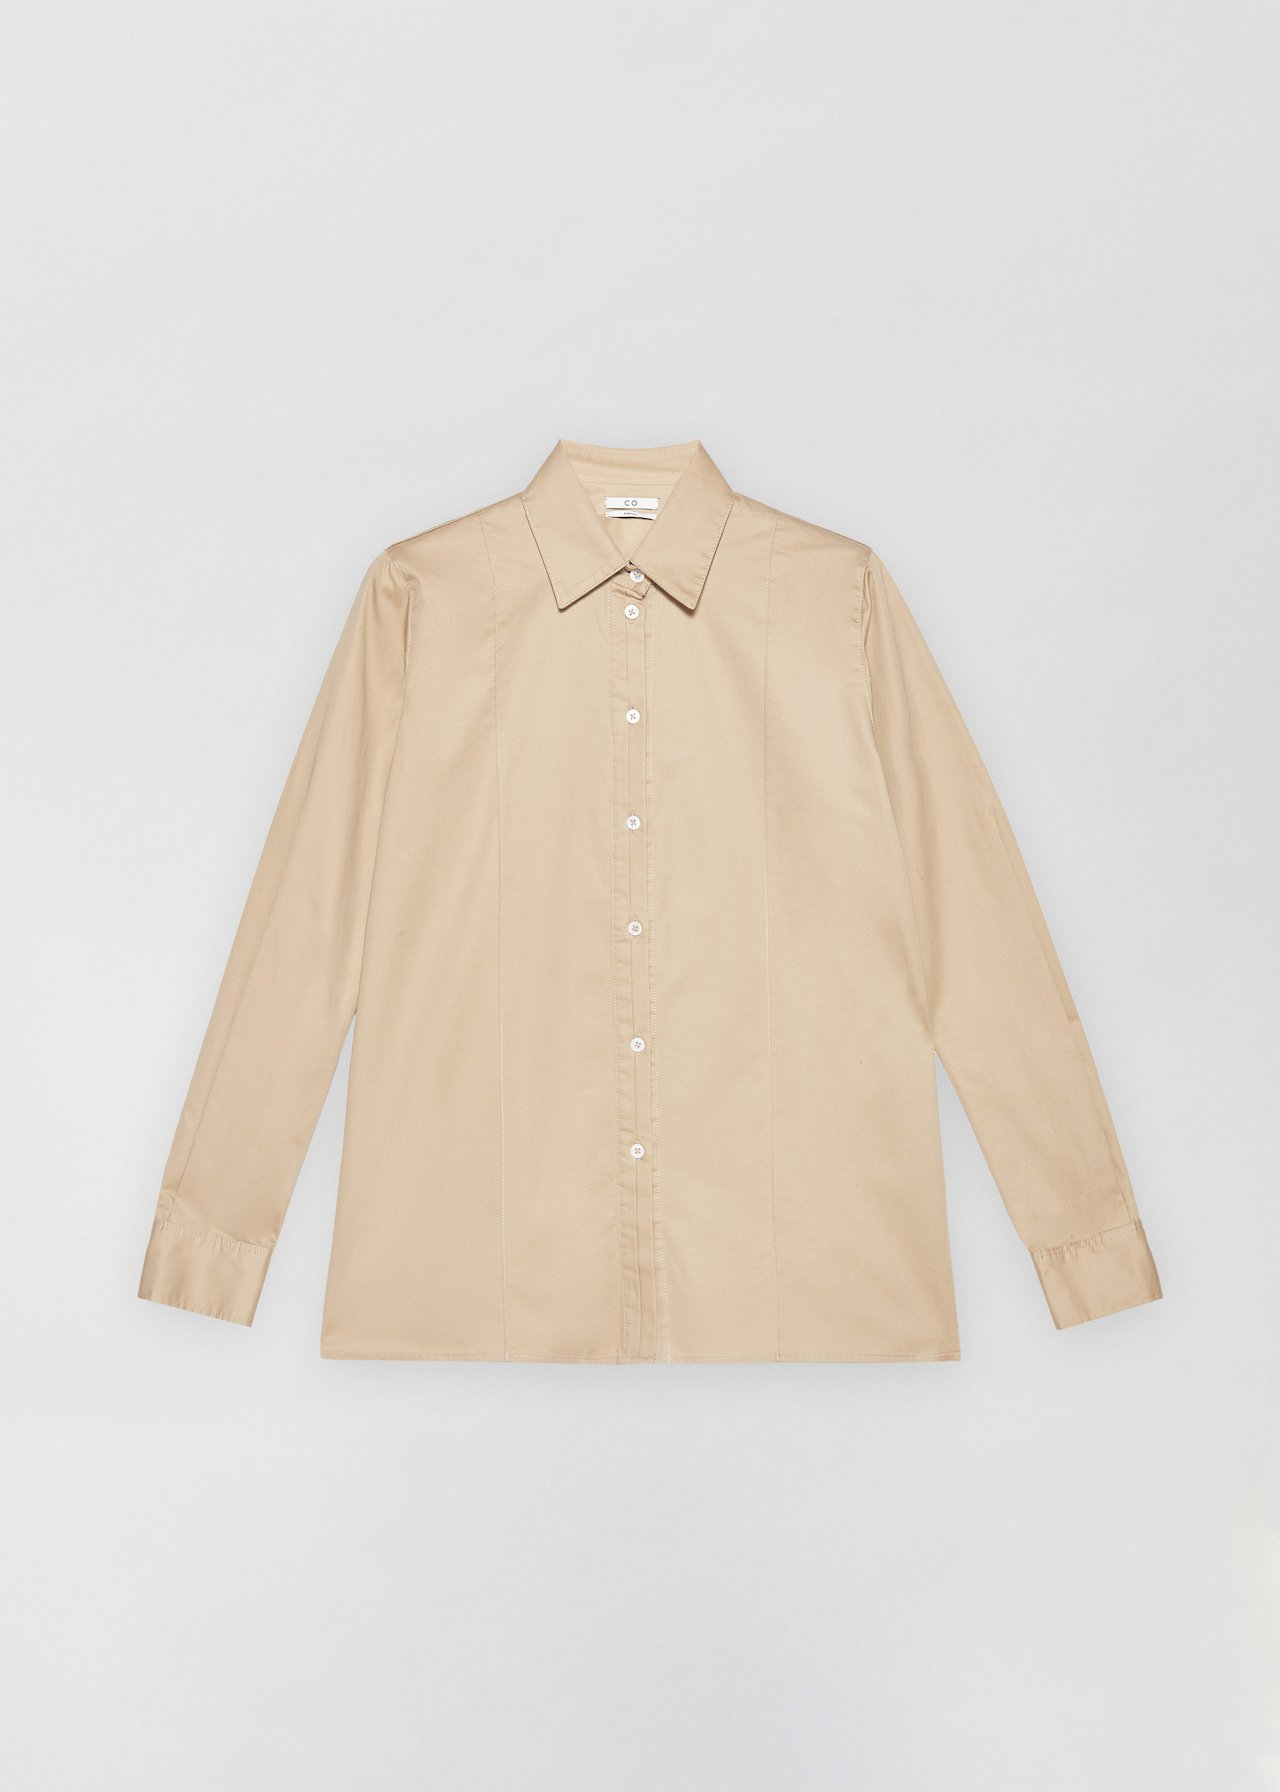 Tucked Placket Button Down Shirt - White in Taupe by Co Collections